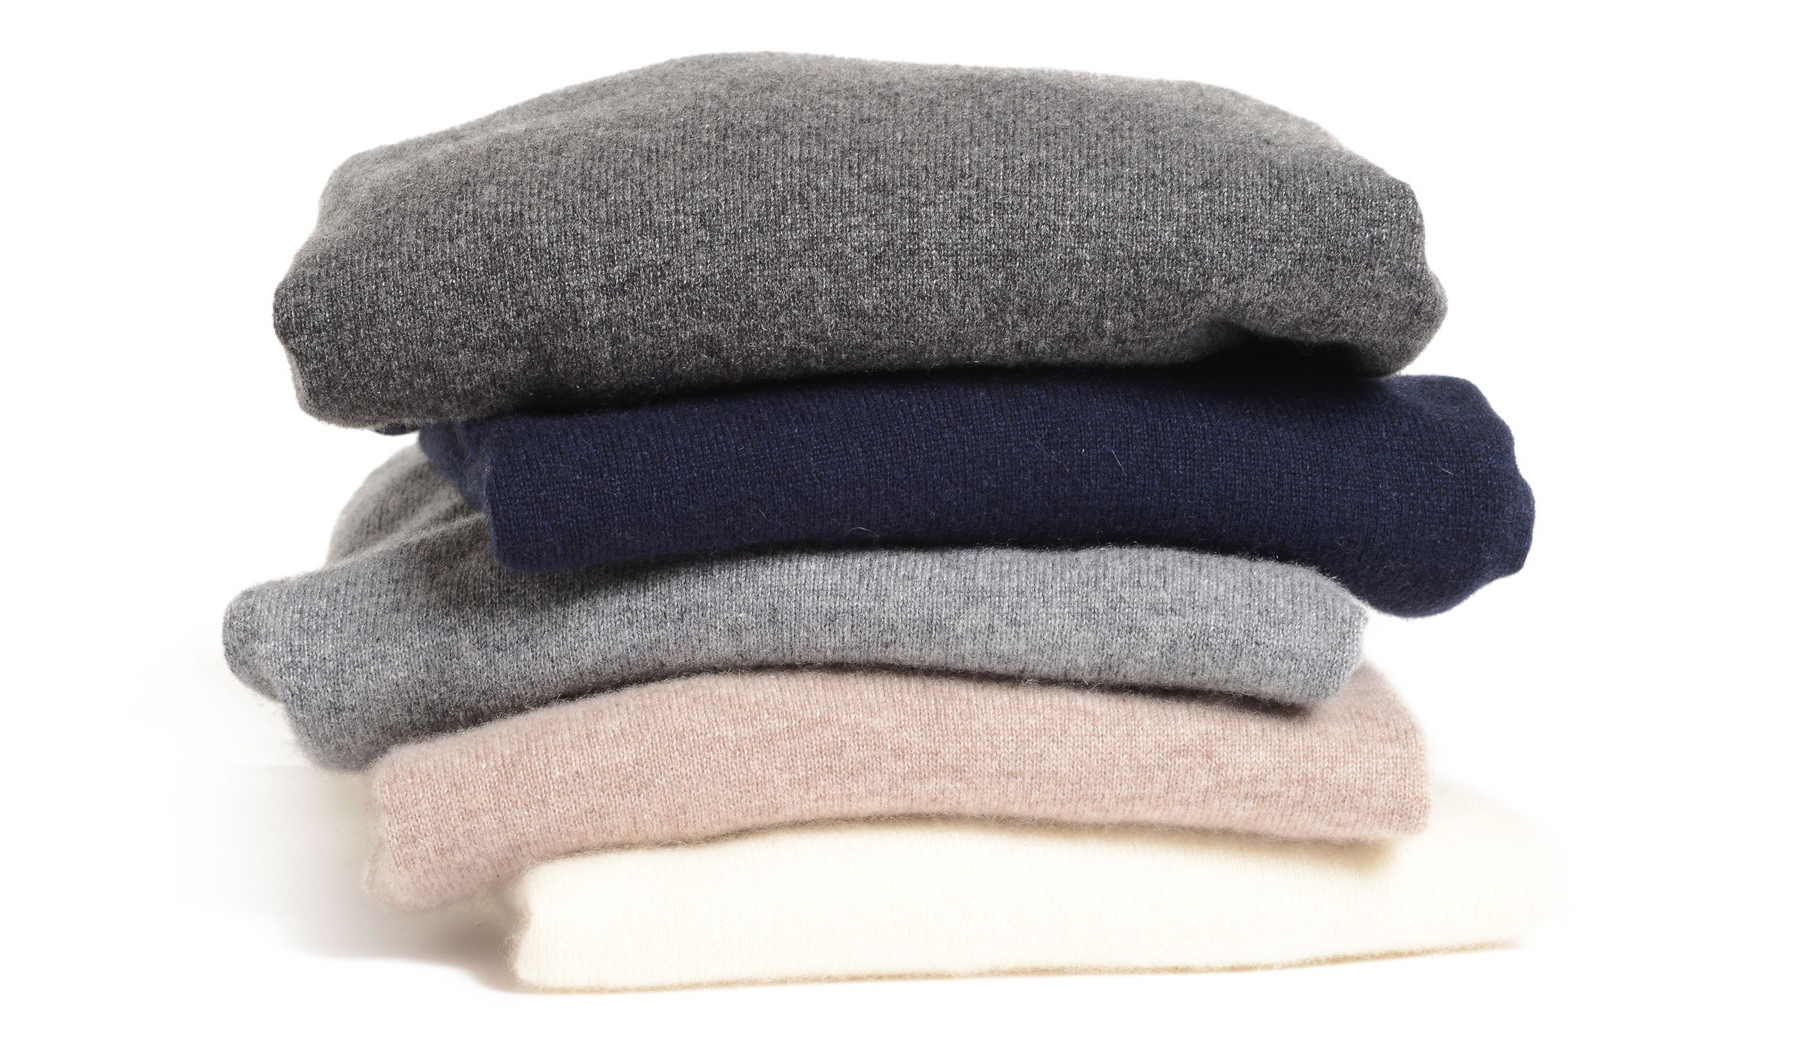 The best affordable men's cashmere sweaters